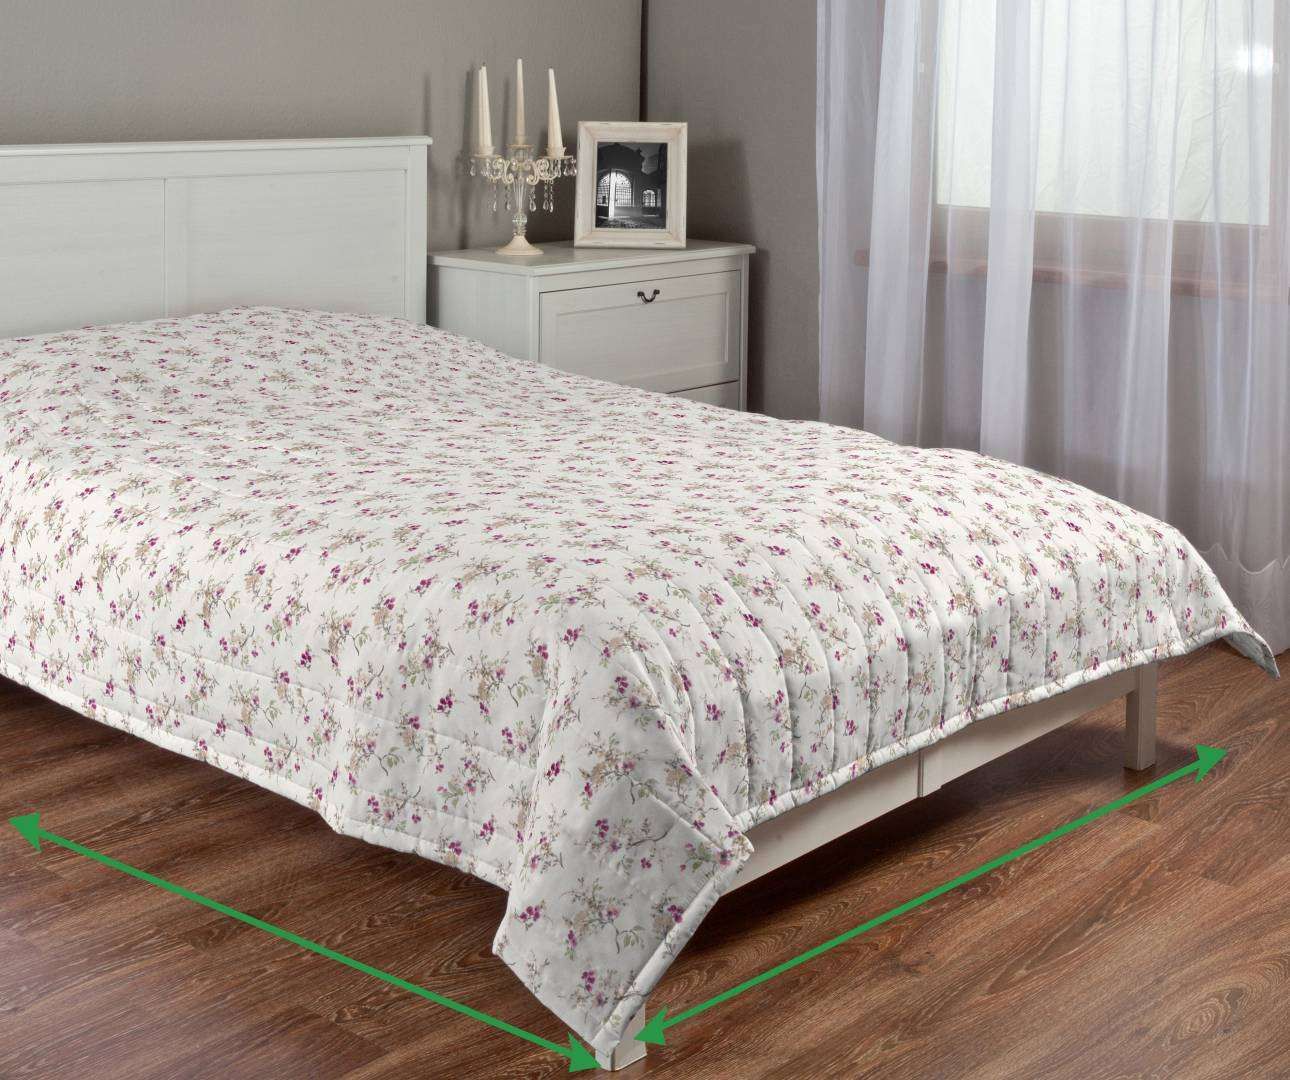 Quilted throw (vertical quilt pattern) in collection Mirella, fabric: 141-13